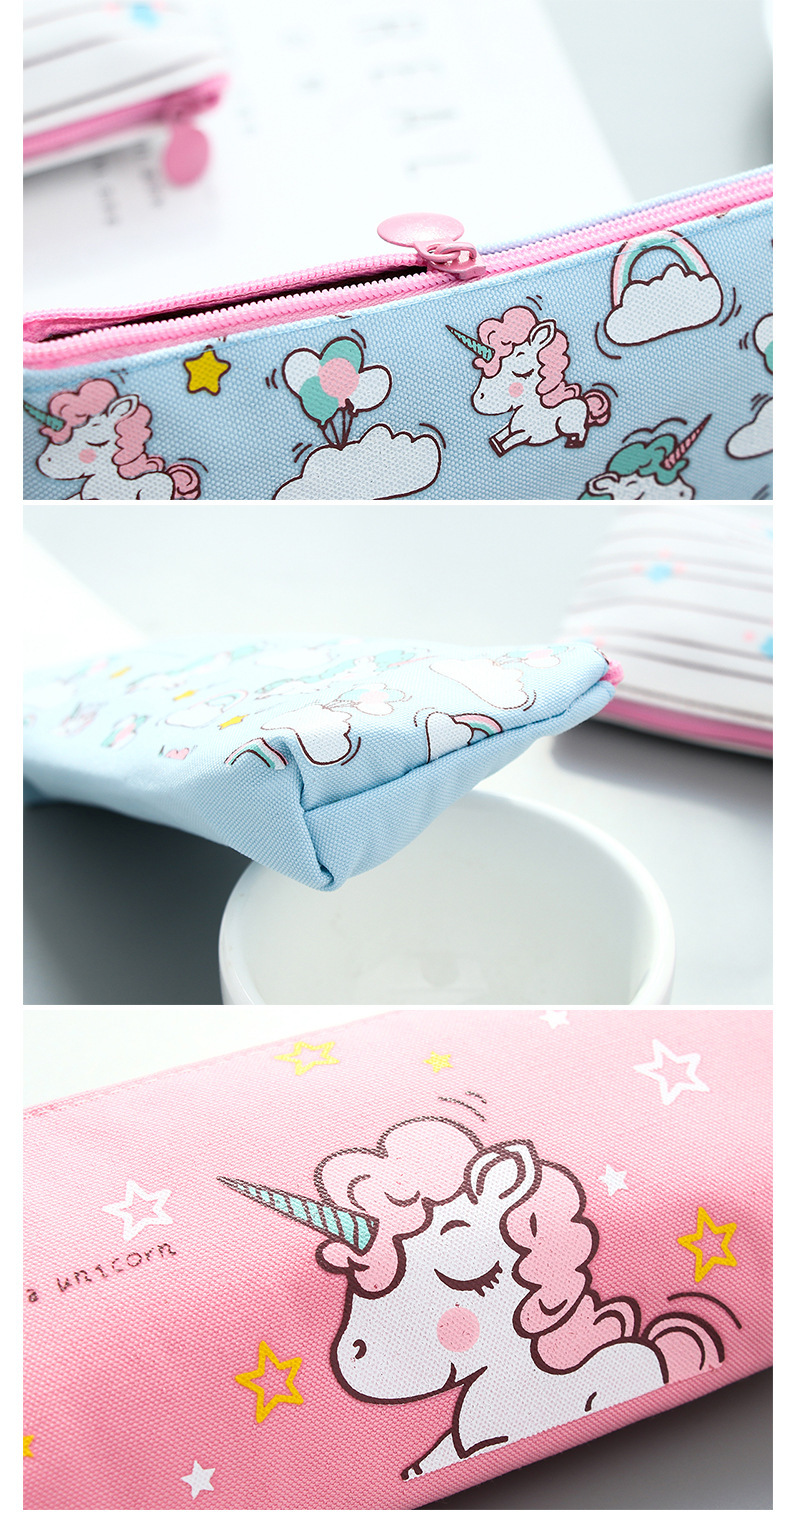 Creative Unicorn Pencil Case Large Capacity Pen Bag Cartoon Bag for Kids Gift Office School Stationery Supplies